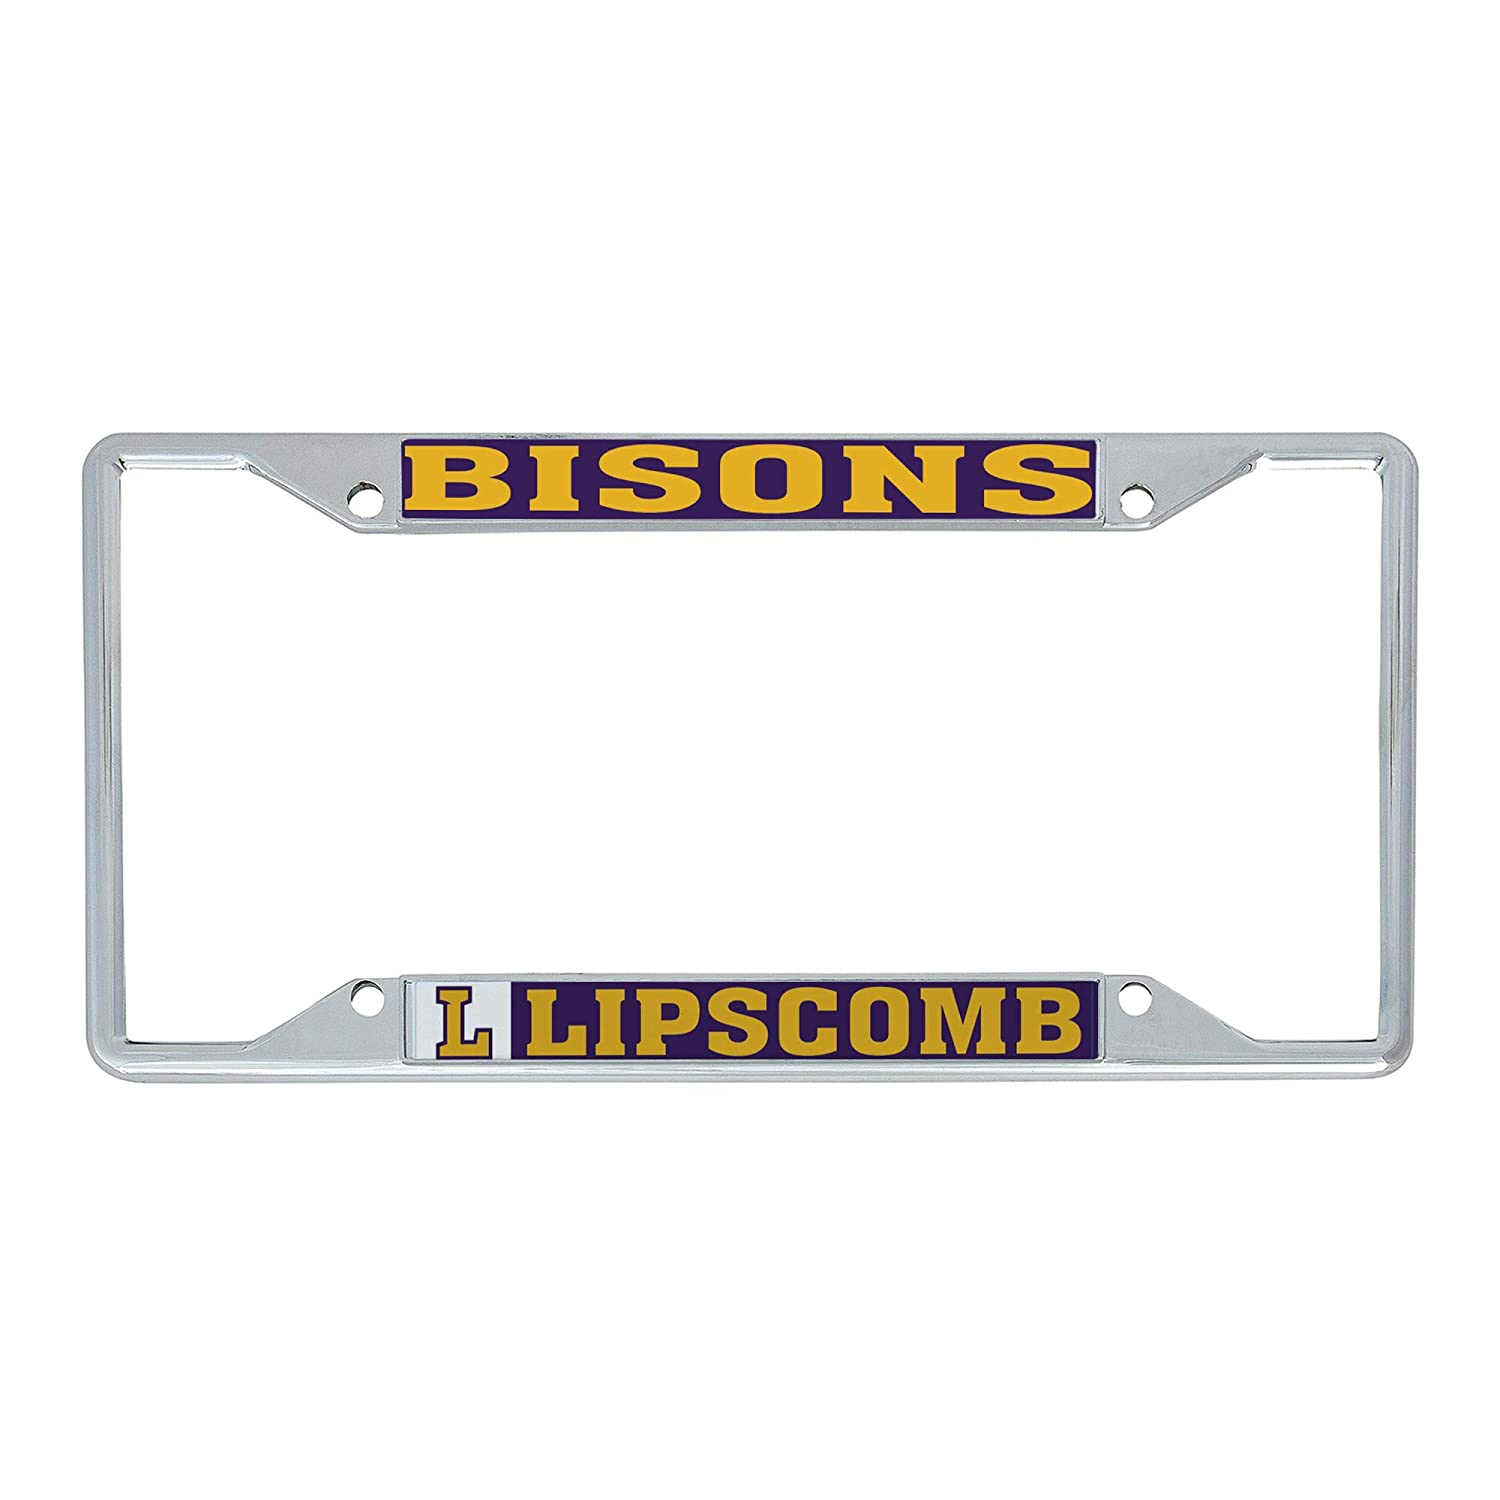 Desert Cactus Lipscomb University Bisons NCAA Metal License Plate Frame for Front Back of Car Officially Licensed Mascot